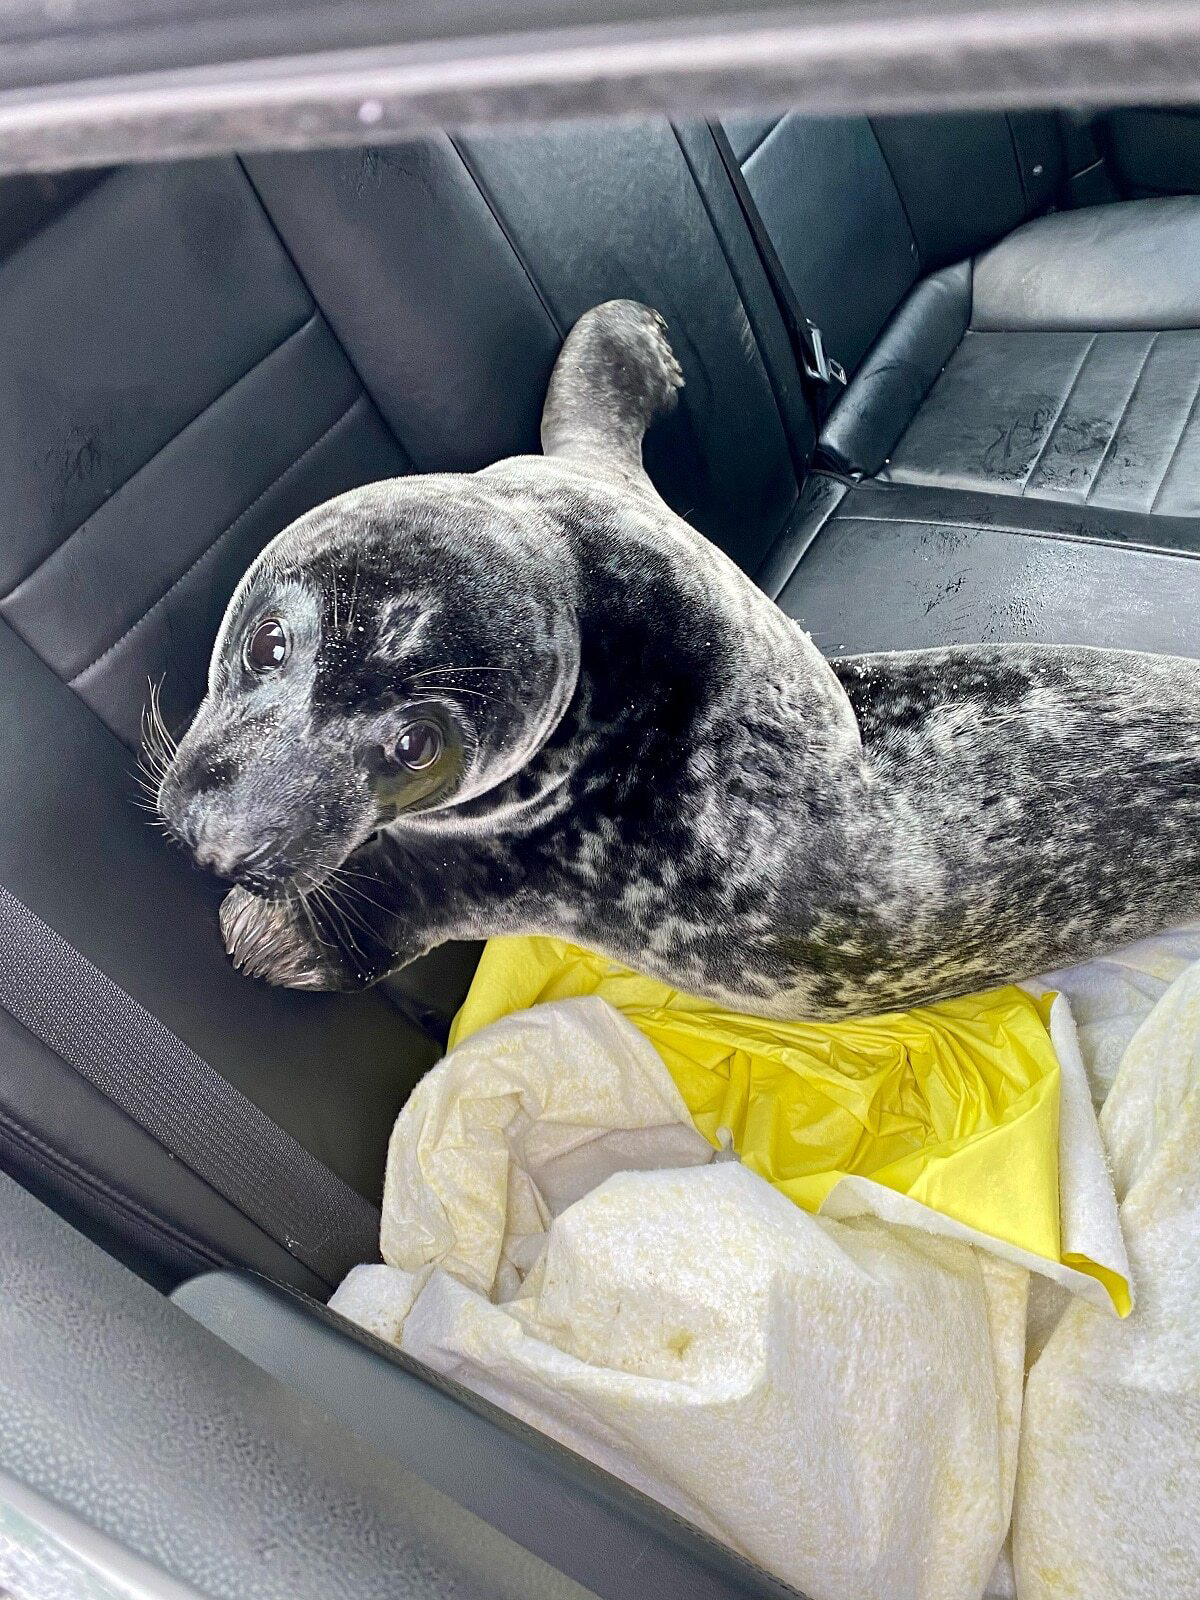 A seal is shown in the back of a police cruiser after being rescued in Charlottetown, P.E.I., in this recent handout photo. The seal was wandering the streets of Charlottetown, P.E.I. Sunday morning, prompting a concerned neighbour to call police. Though eyewitnesses say the seal did its best to resist arrest, police got it into the back of a cruiser and, in consultation with Fisheries and Oceans Canada, released it back into the water where it belongs.